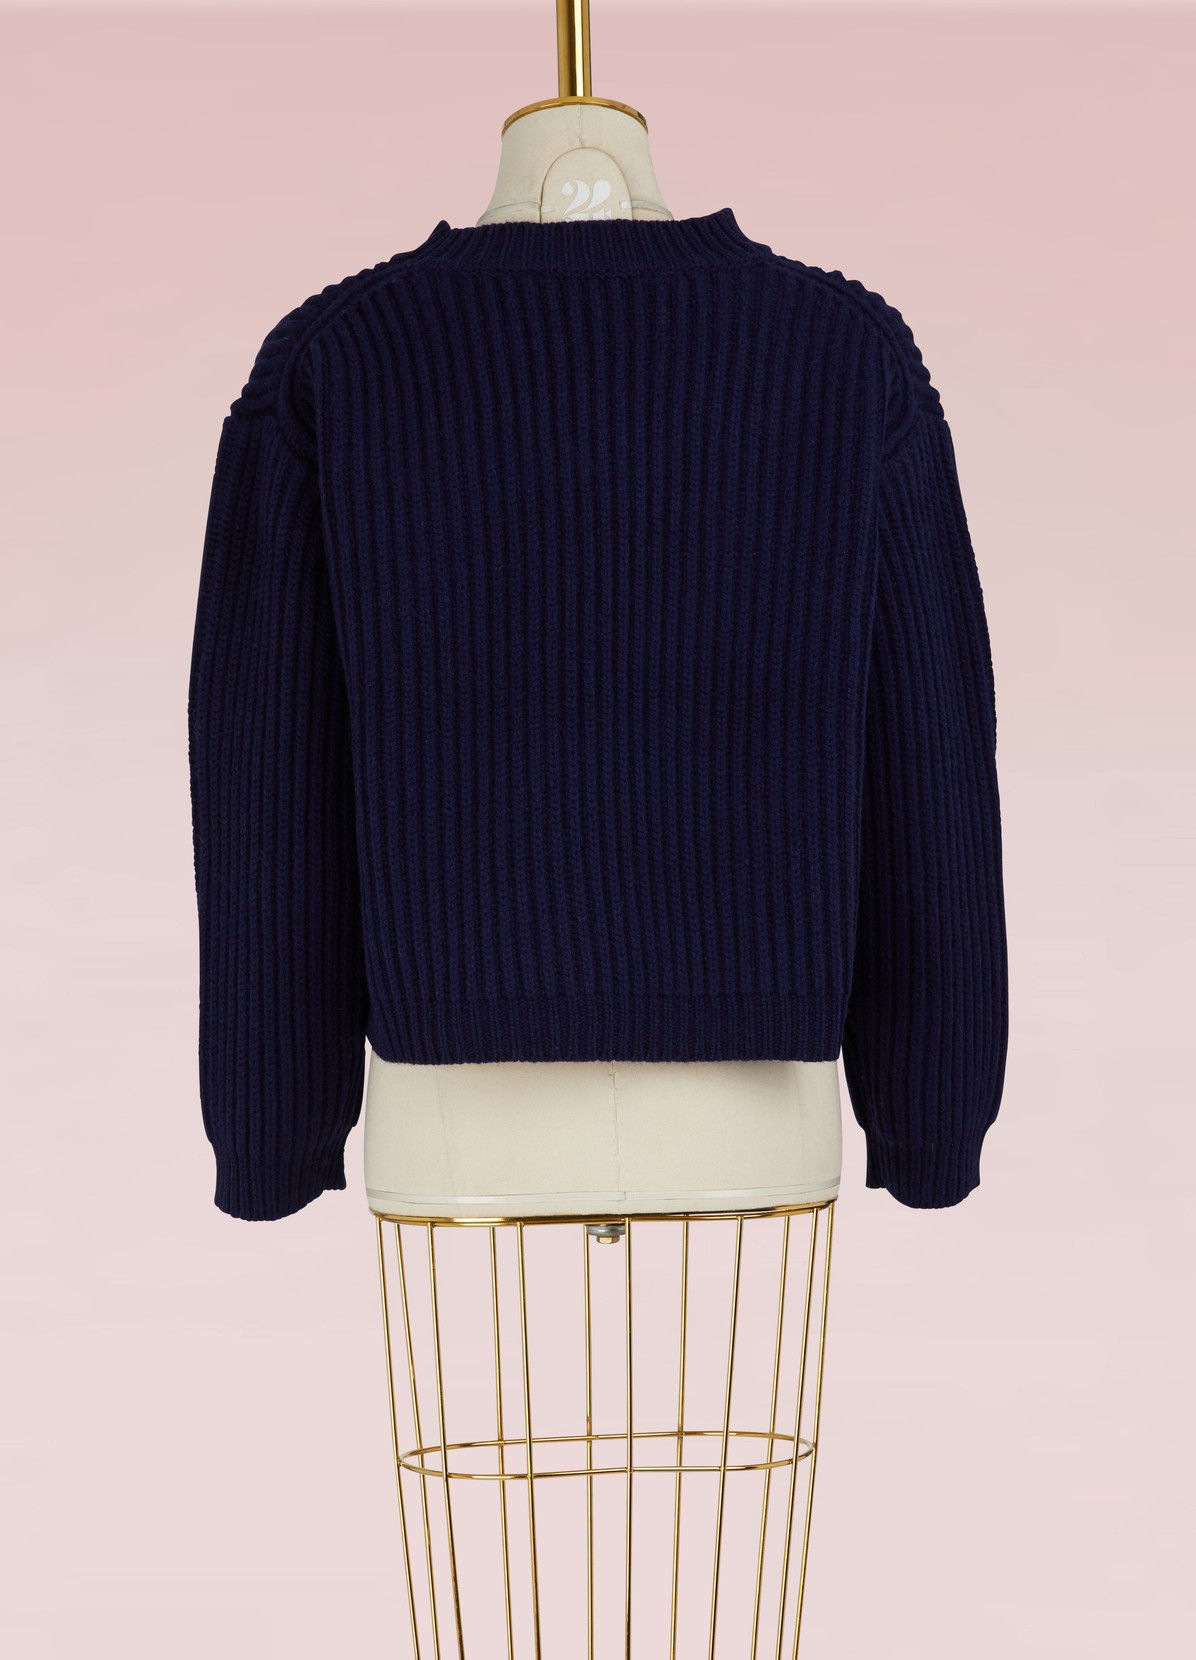 Wool cropped sweater | SOFIE D'HOORE | 24 Sèvres